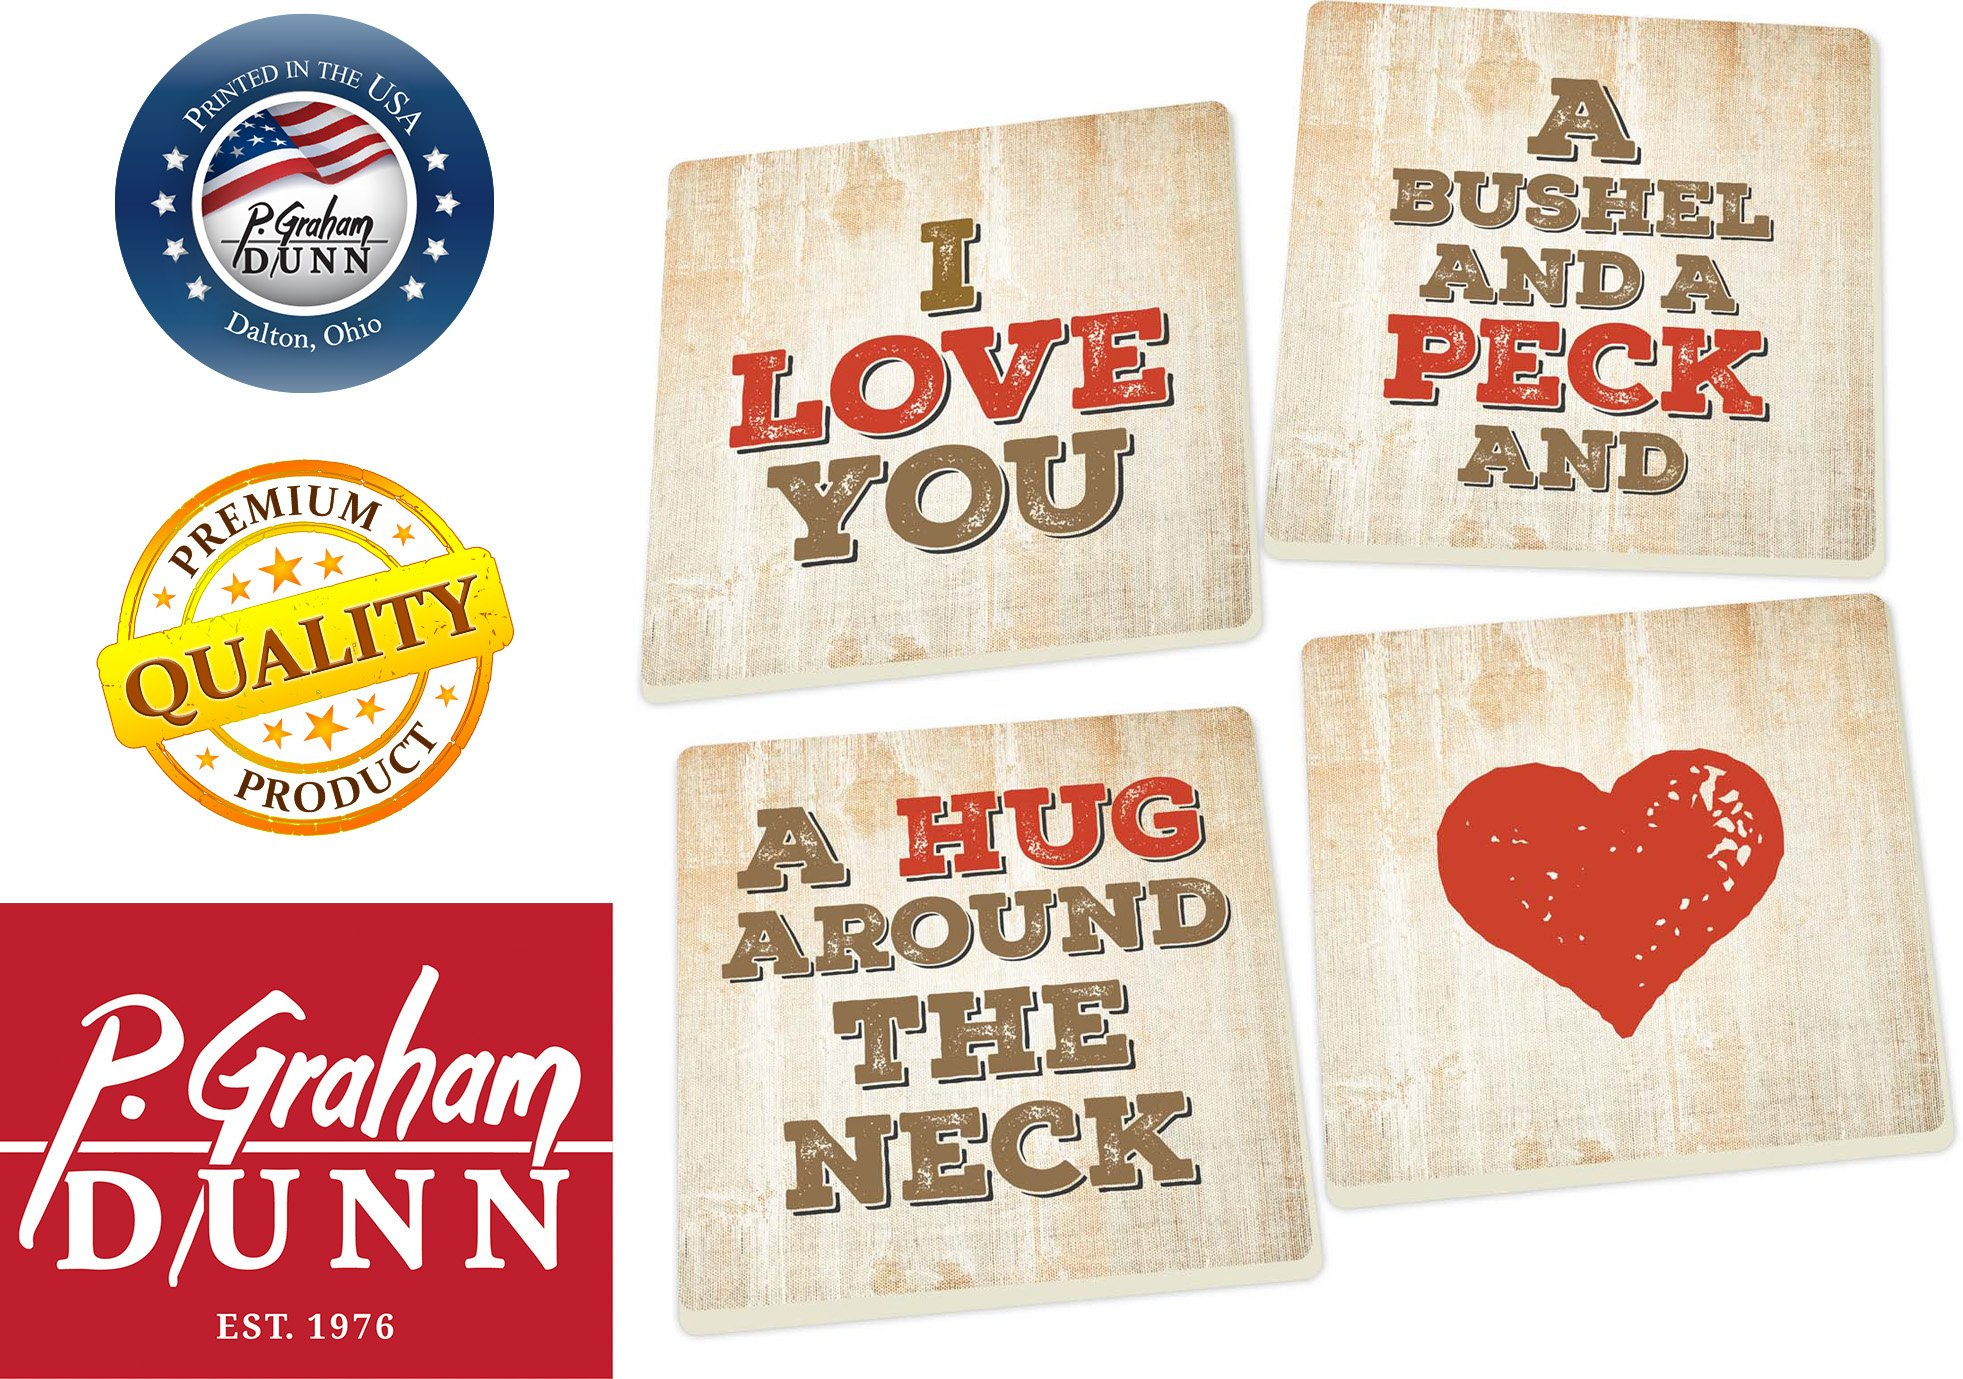 I Love You a Bushel and a Peck 5 x 5 Super Absorbent Ceramic Coasters, Set of 4 by P Graham Dunn (Image #2)